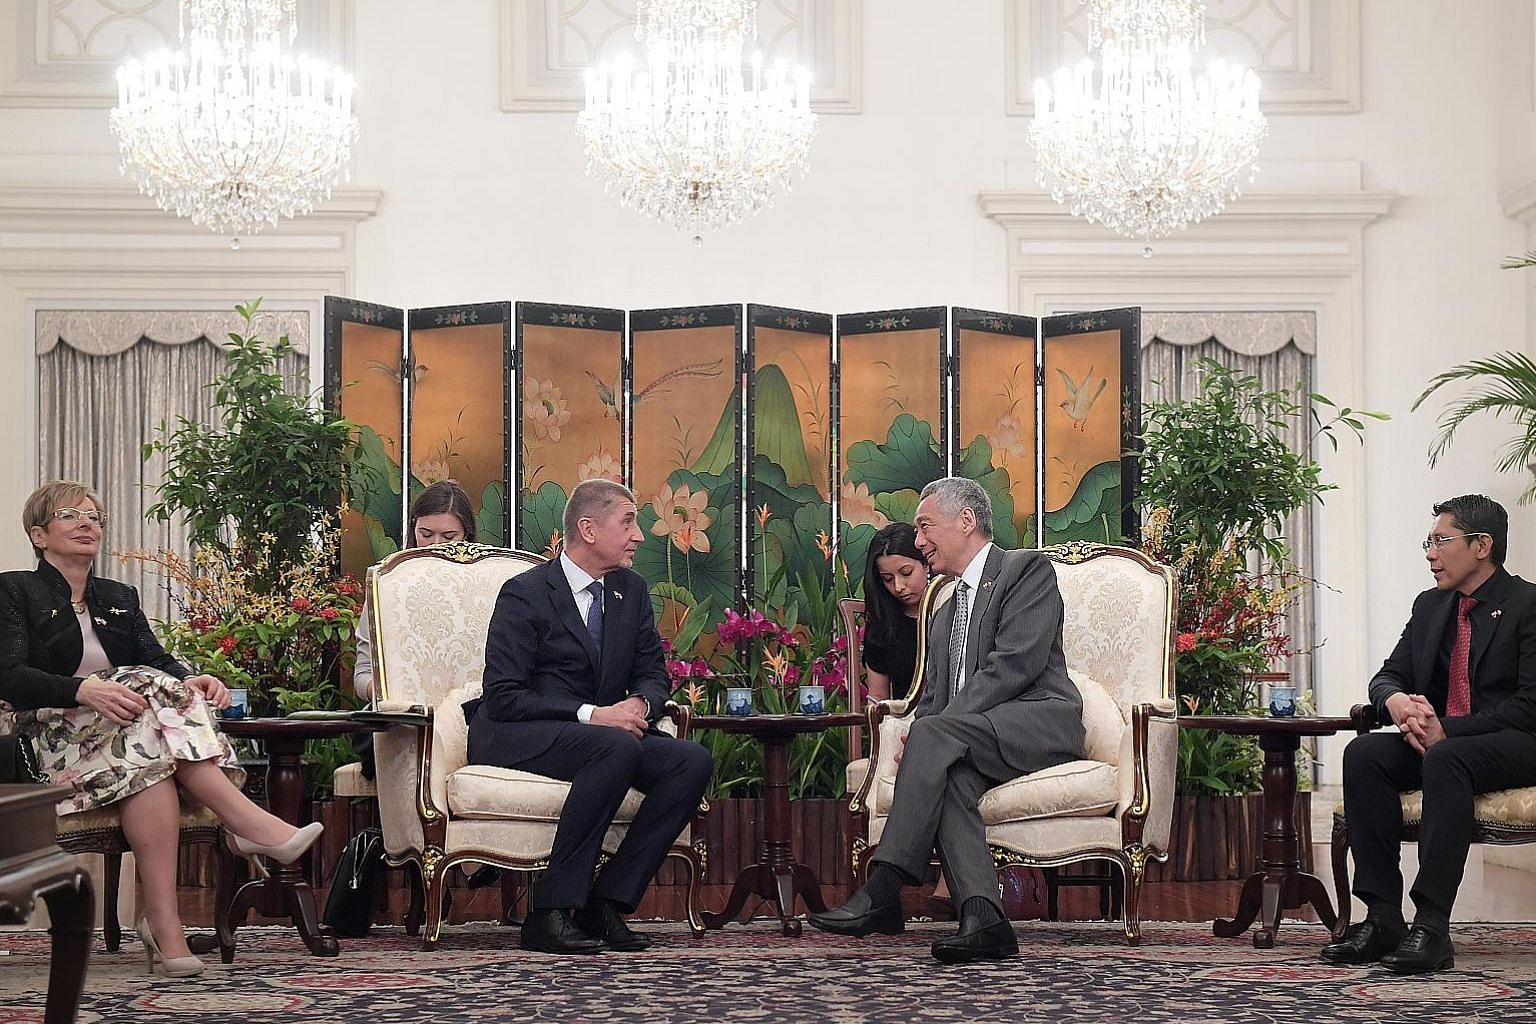 Prime Minister Lee Hsien Loong meeting Czech Republic Prime Minister Andrej Babis at the Istana yesterday. They discussed growing collaborations between the two countries, and areas to enhance the relationship, including trade, technology and researc